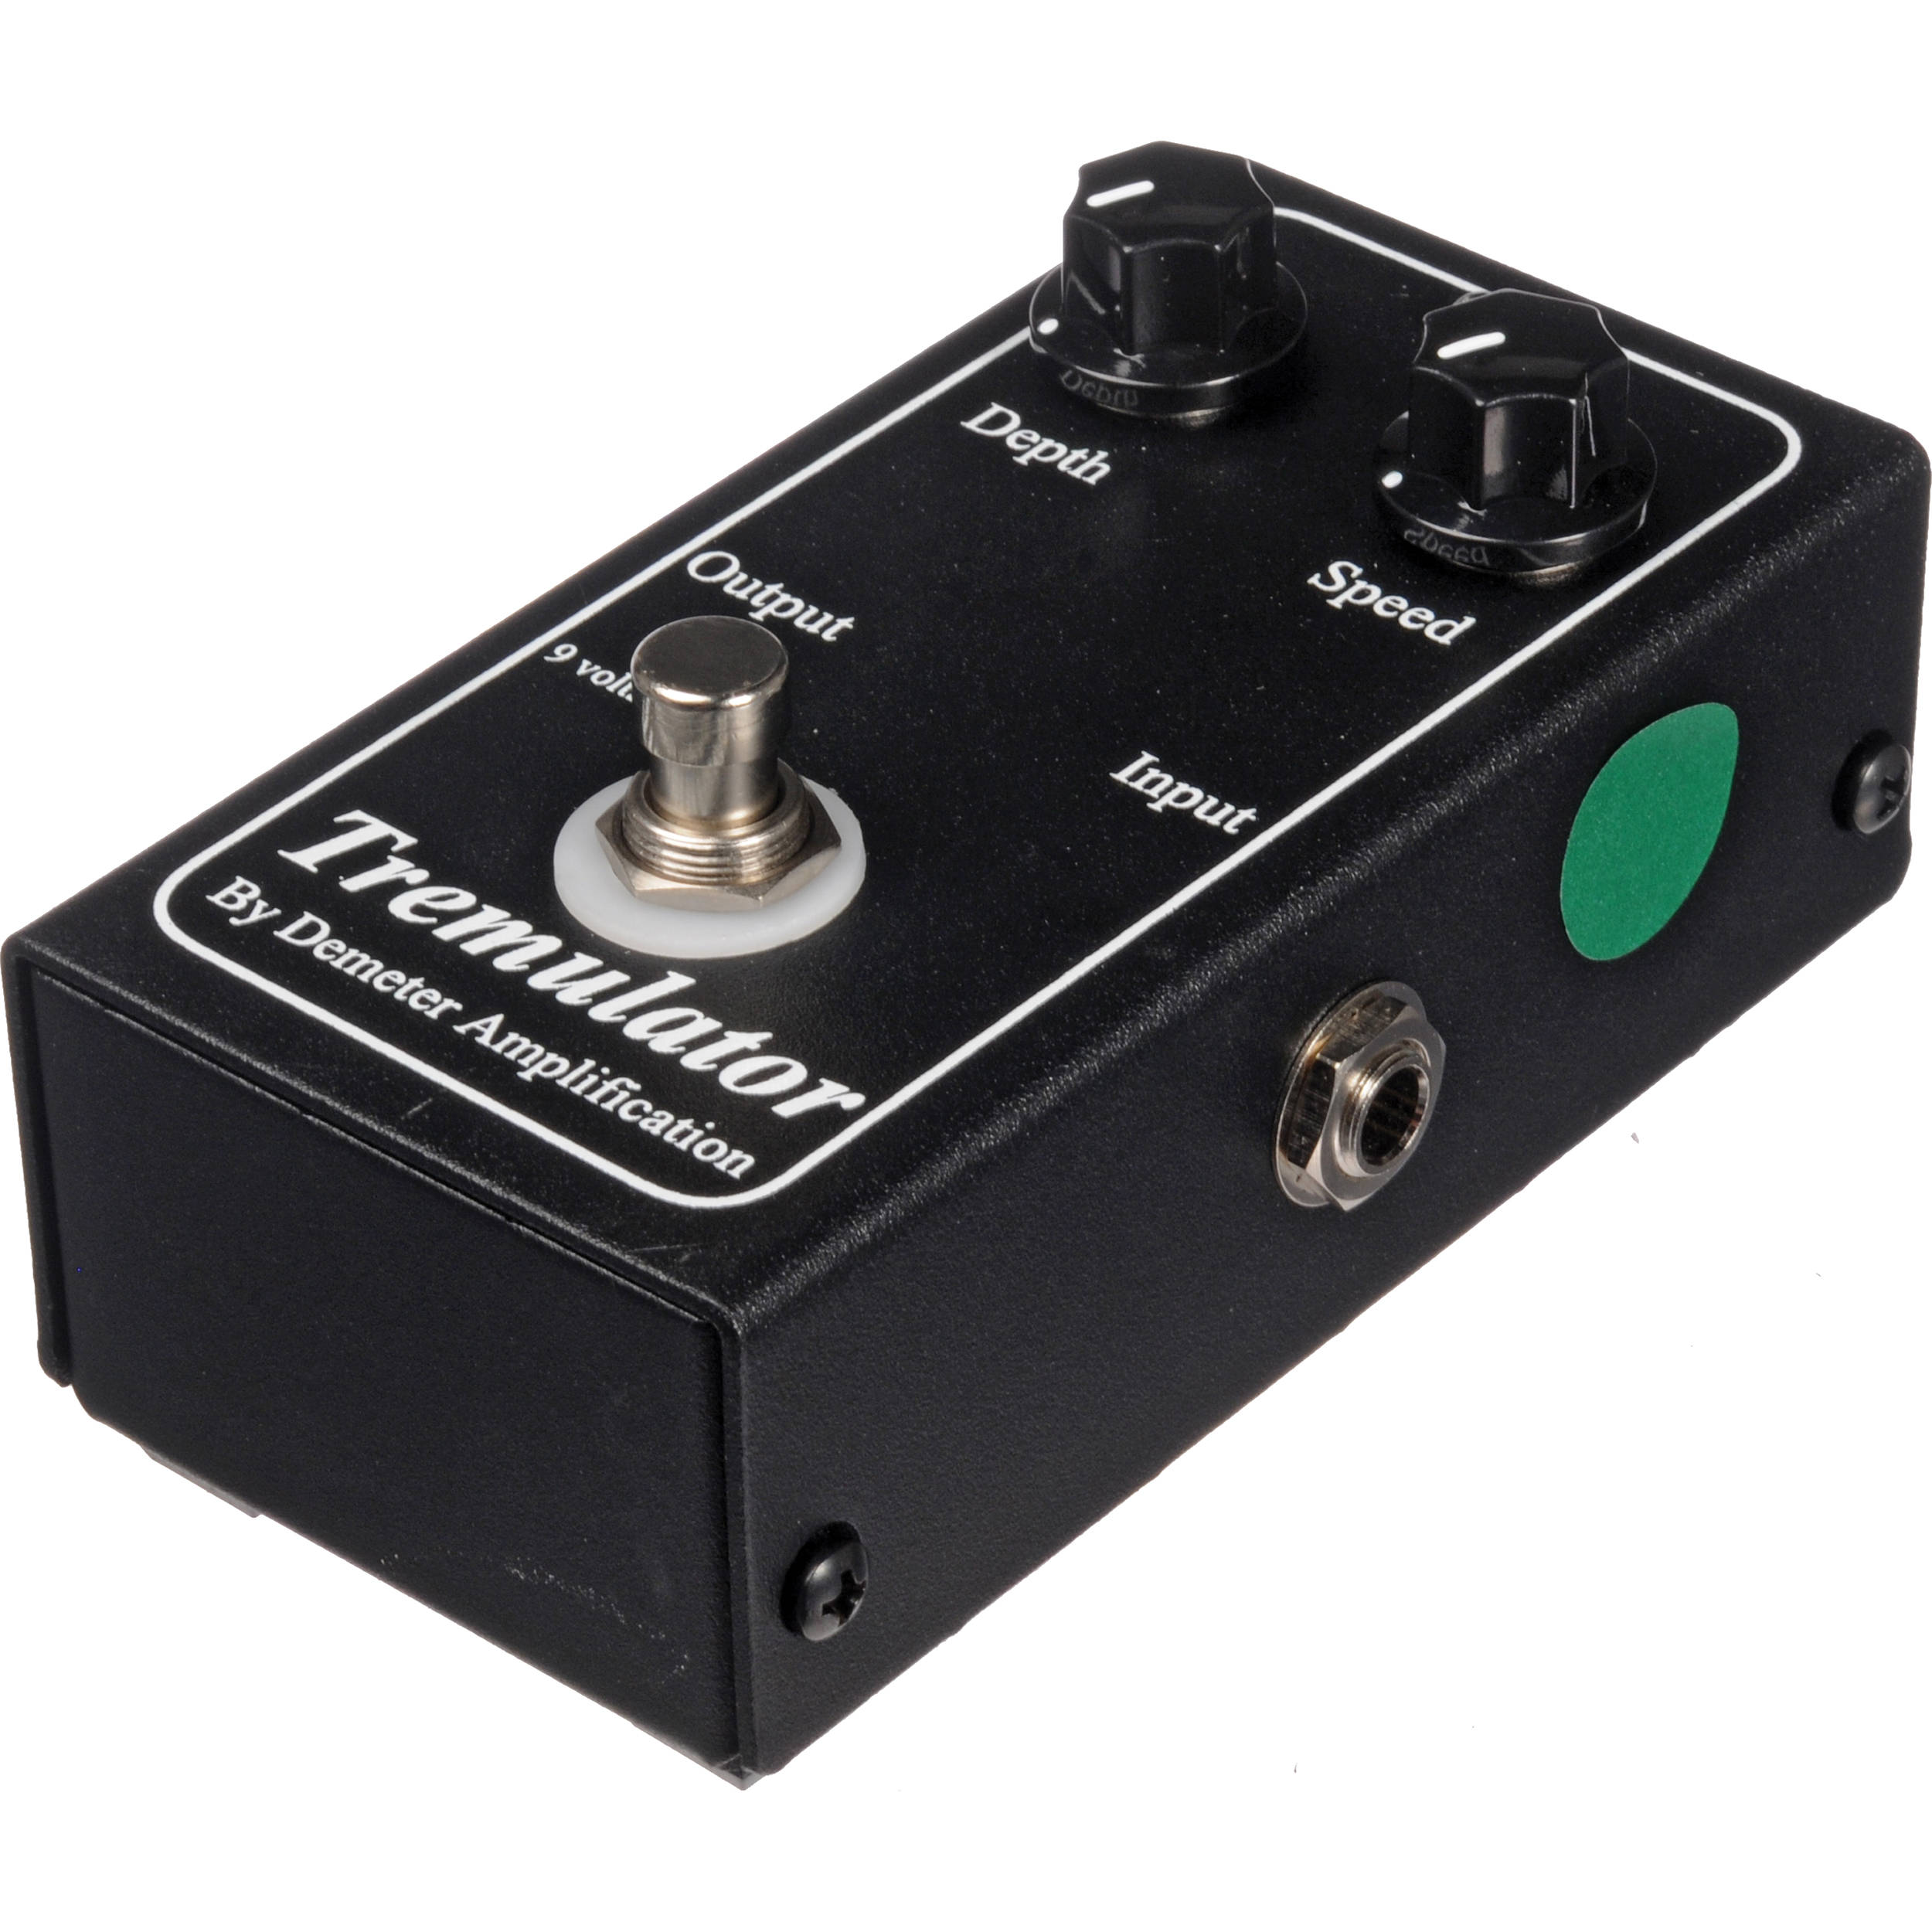 Demeter TRM-1 - The Tremulator Tremolo Pedal for Electric Guitar or Bass  Guitar